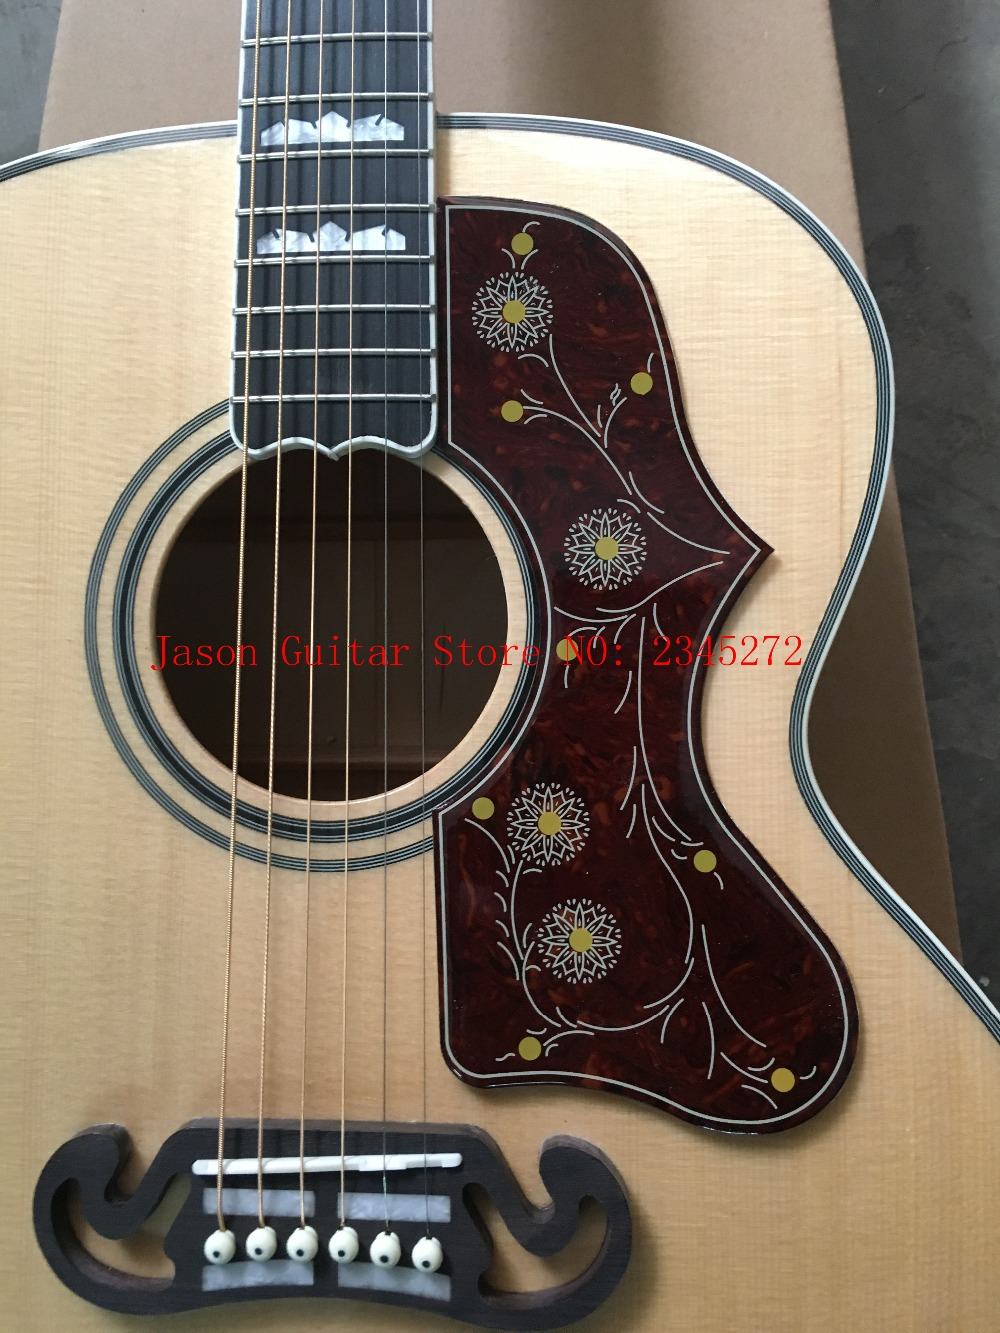 2018 New + Factory + Chibson J200 flame maple acoustic guitar J200 electric acoustic Deluxe guitar spruce top acoustic+customize acoustic